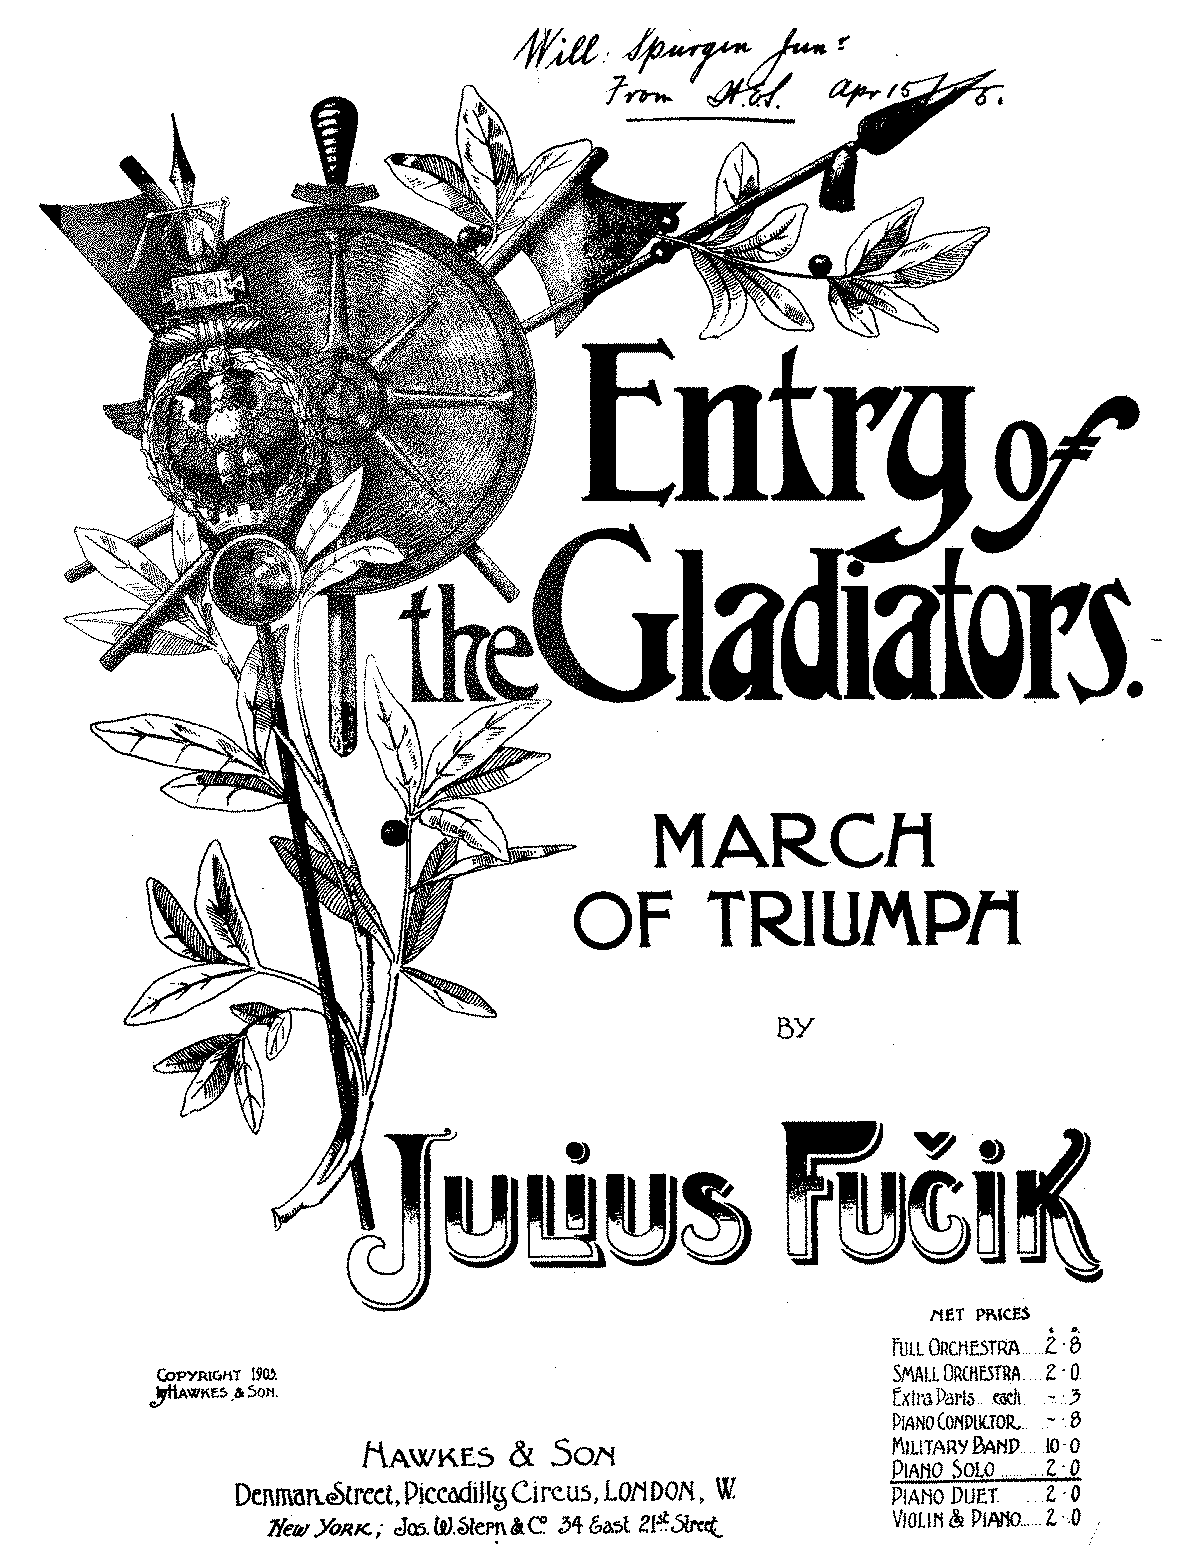 PMLP86290-FUCIK - Entry of the Gladiators March.pdf